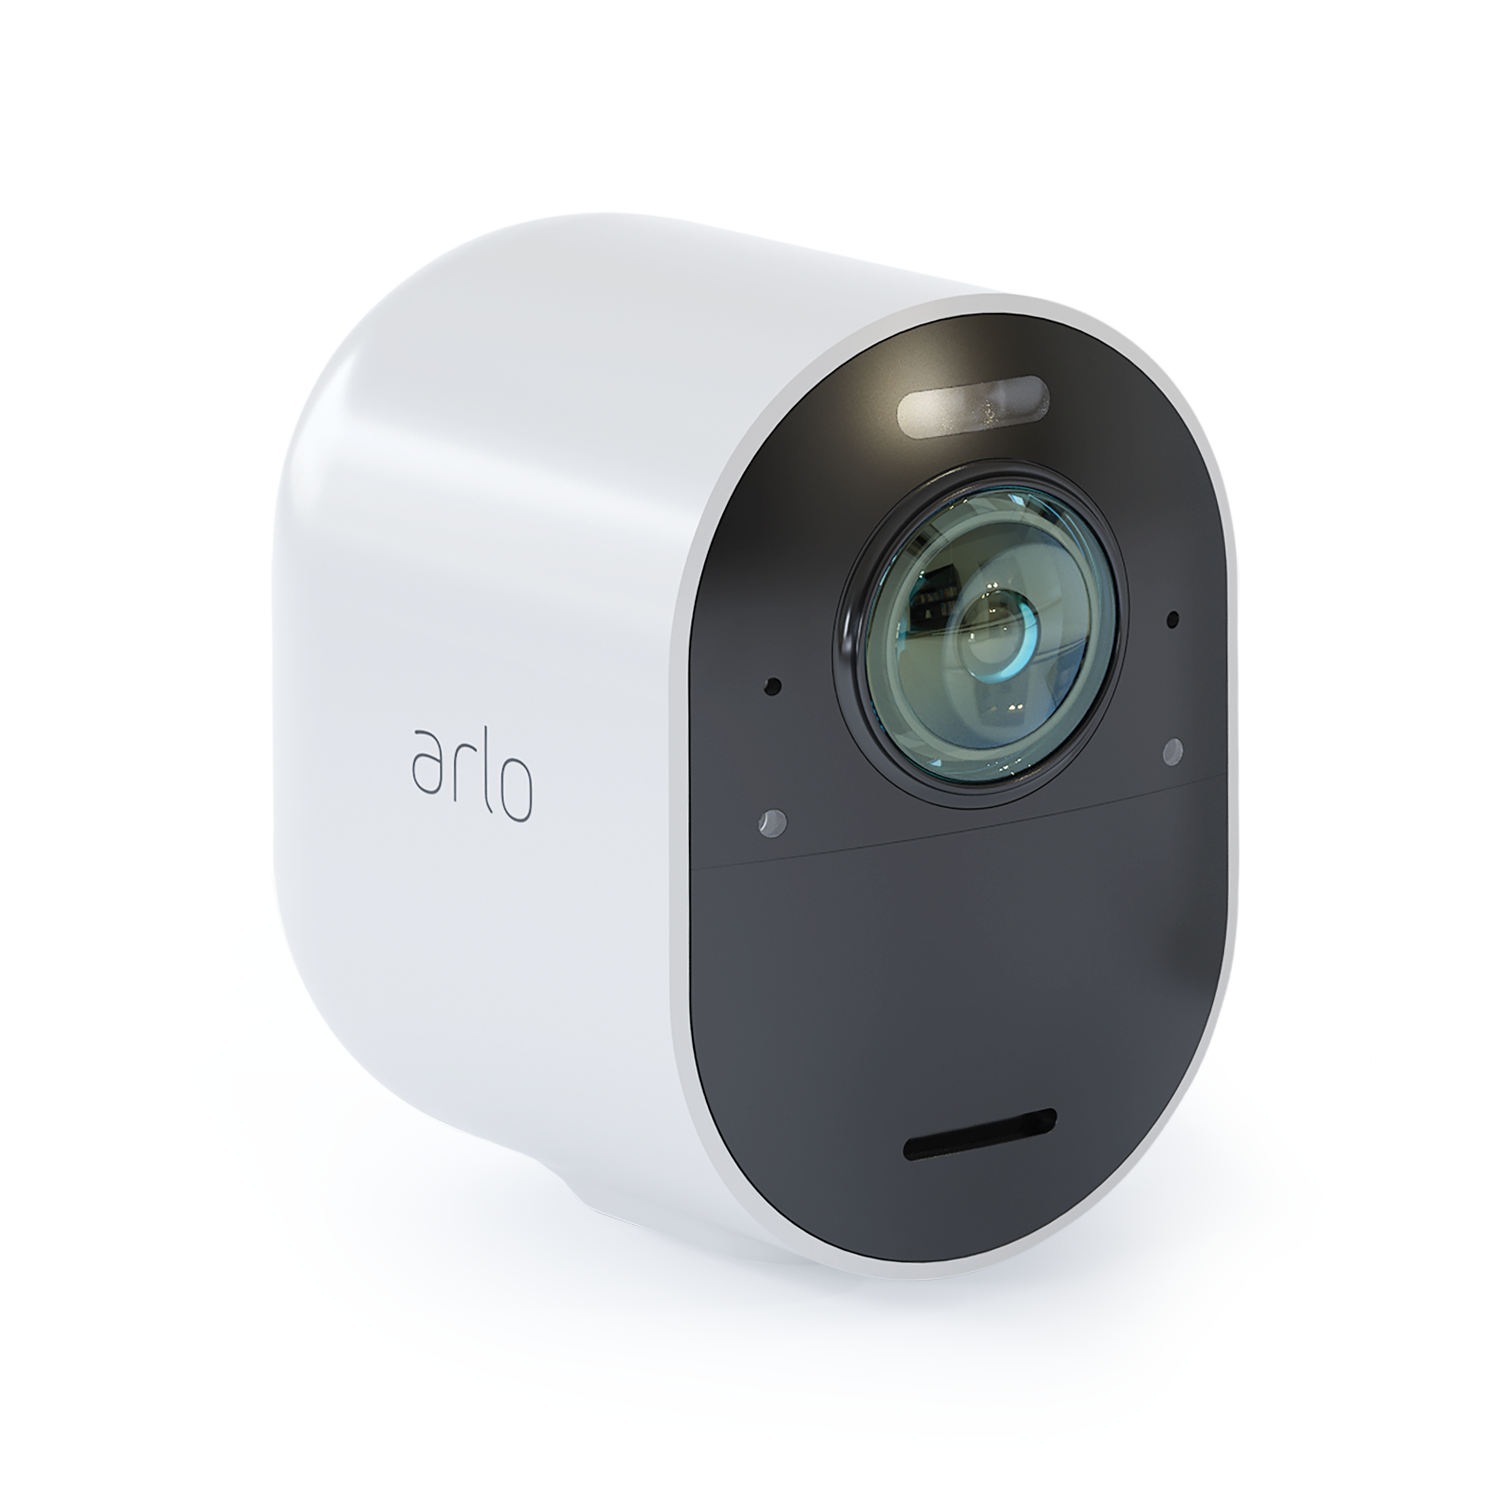 Update: Available later this month] Arlo announces the Arlo